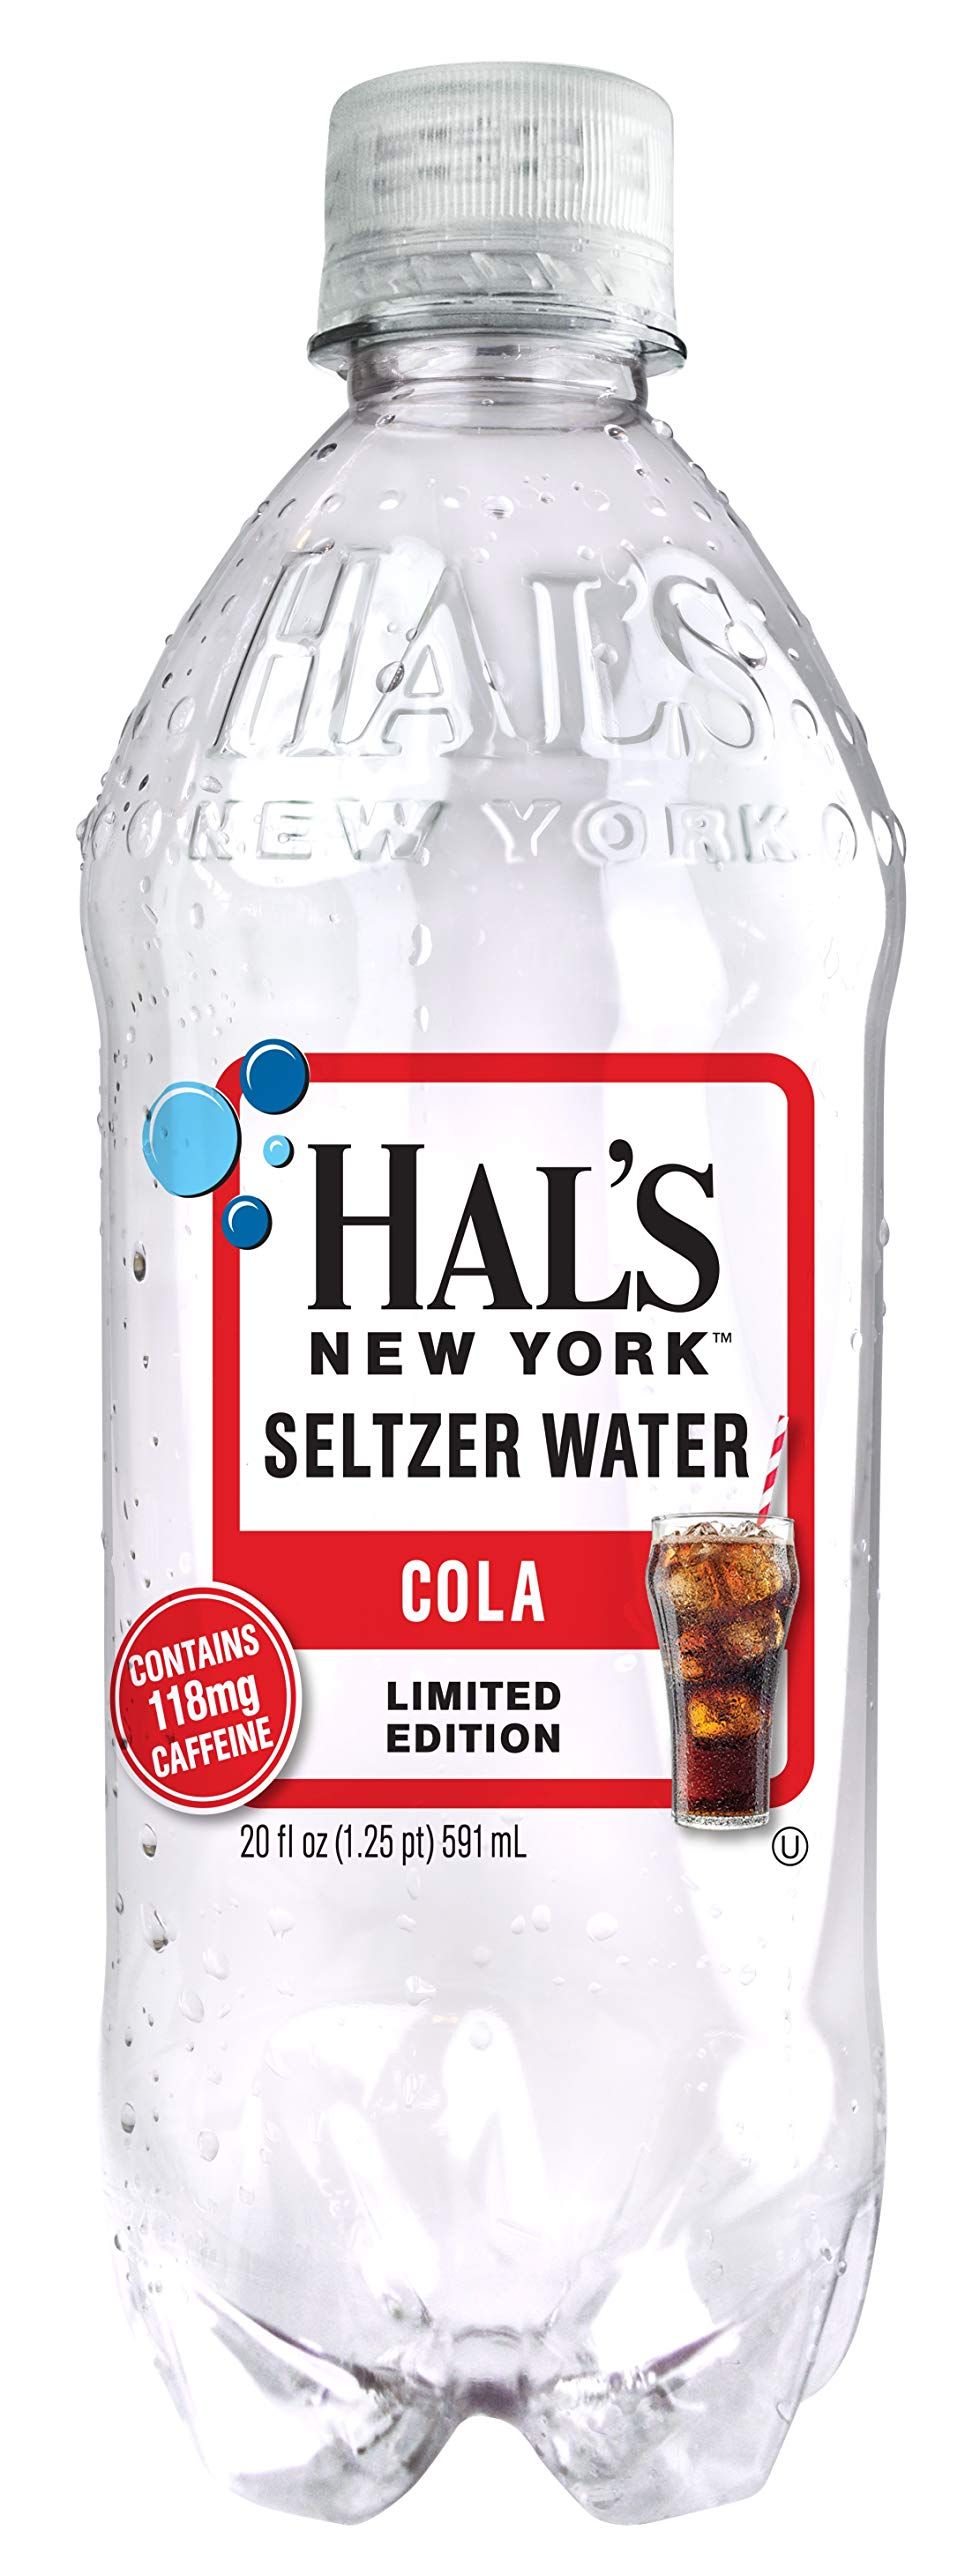 Hal's New York Seltzer Water Cola 20 Oz (24 Pack) by Hal's New York